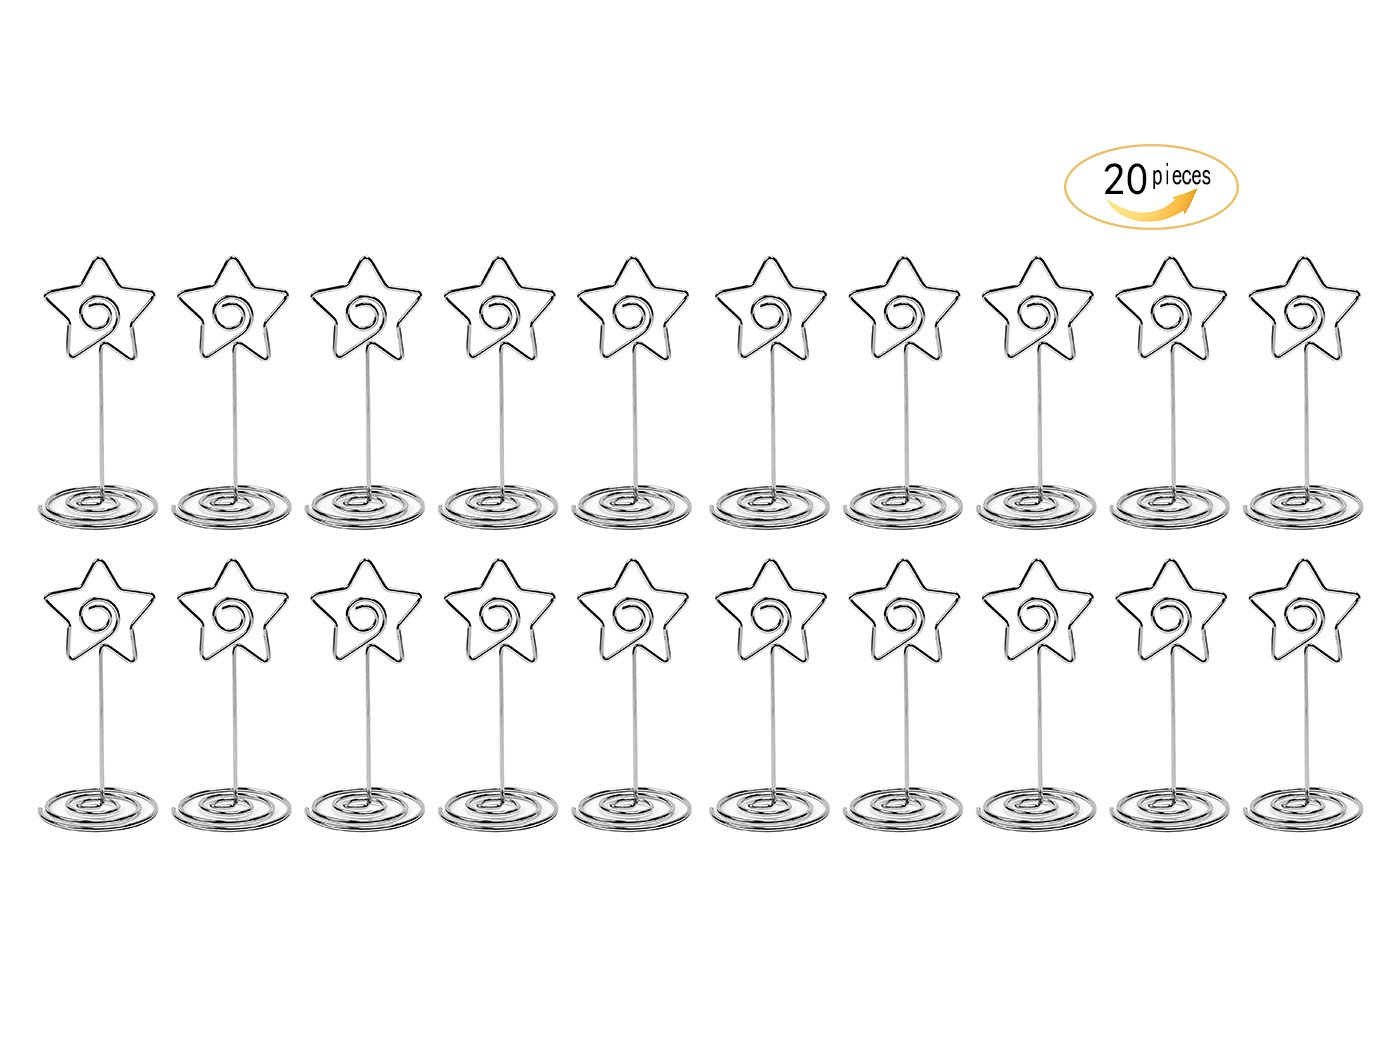 20 Pcs 85mm Tall Star Shape Metal Table Number Holder Stands for Weddings Party Gatherings, Place Card Holder,Photo/Picture Holder